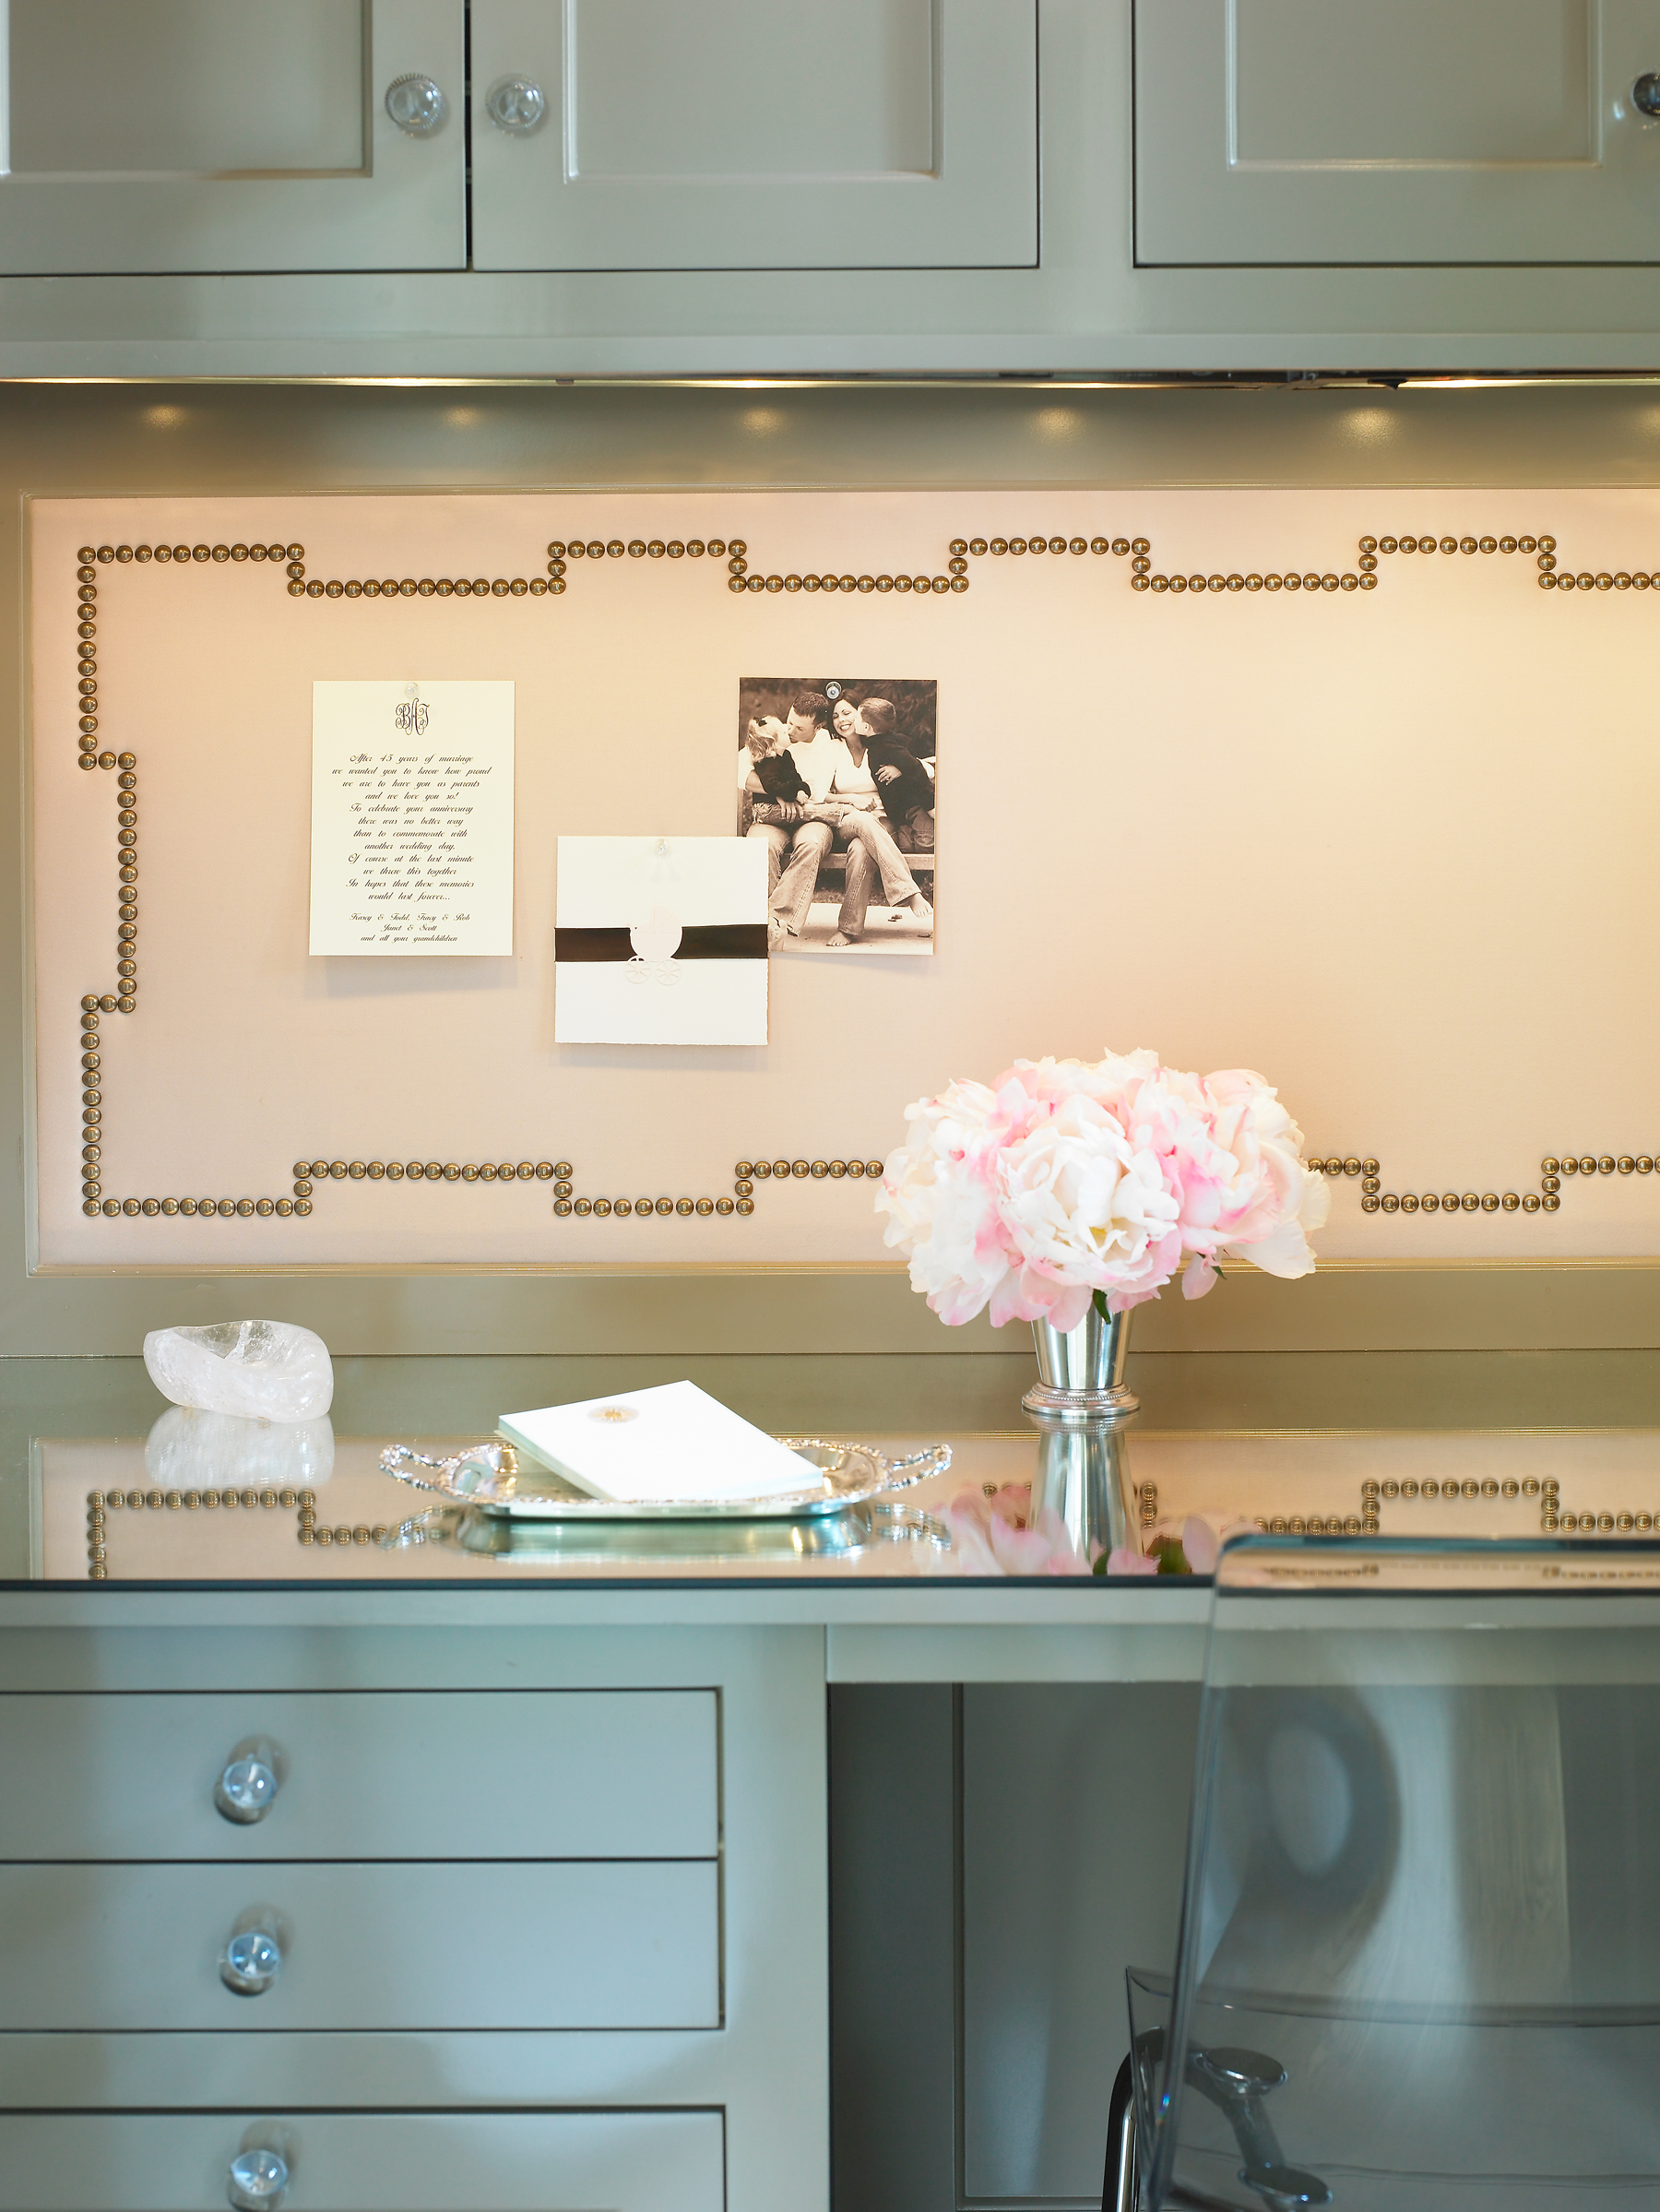 You might have seen Courtney's well-loved bulletin board design floating around on Pinterest.